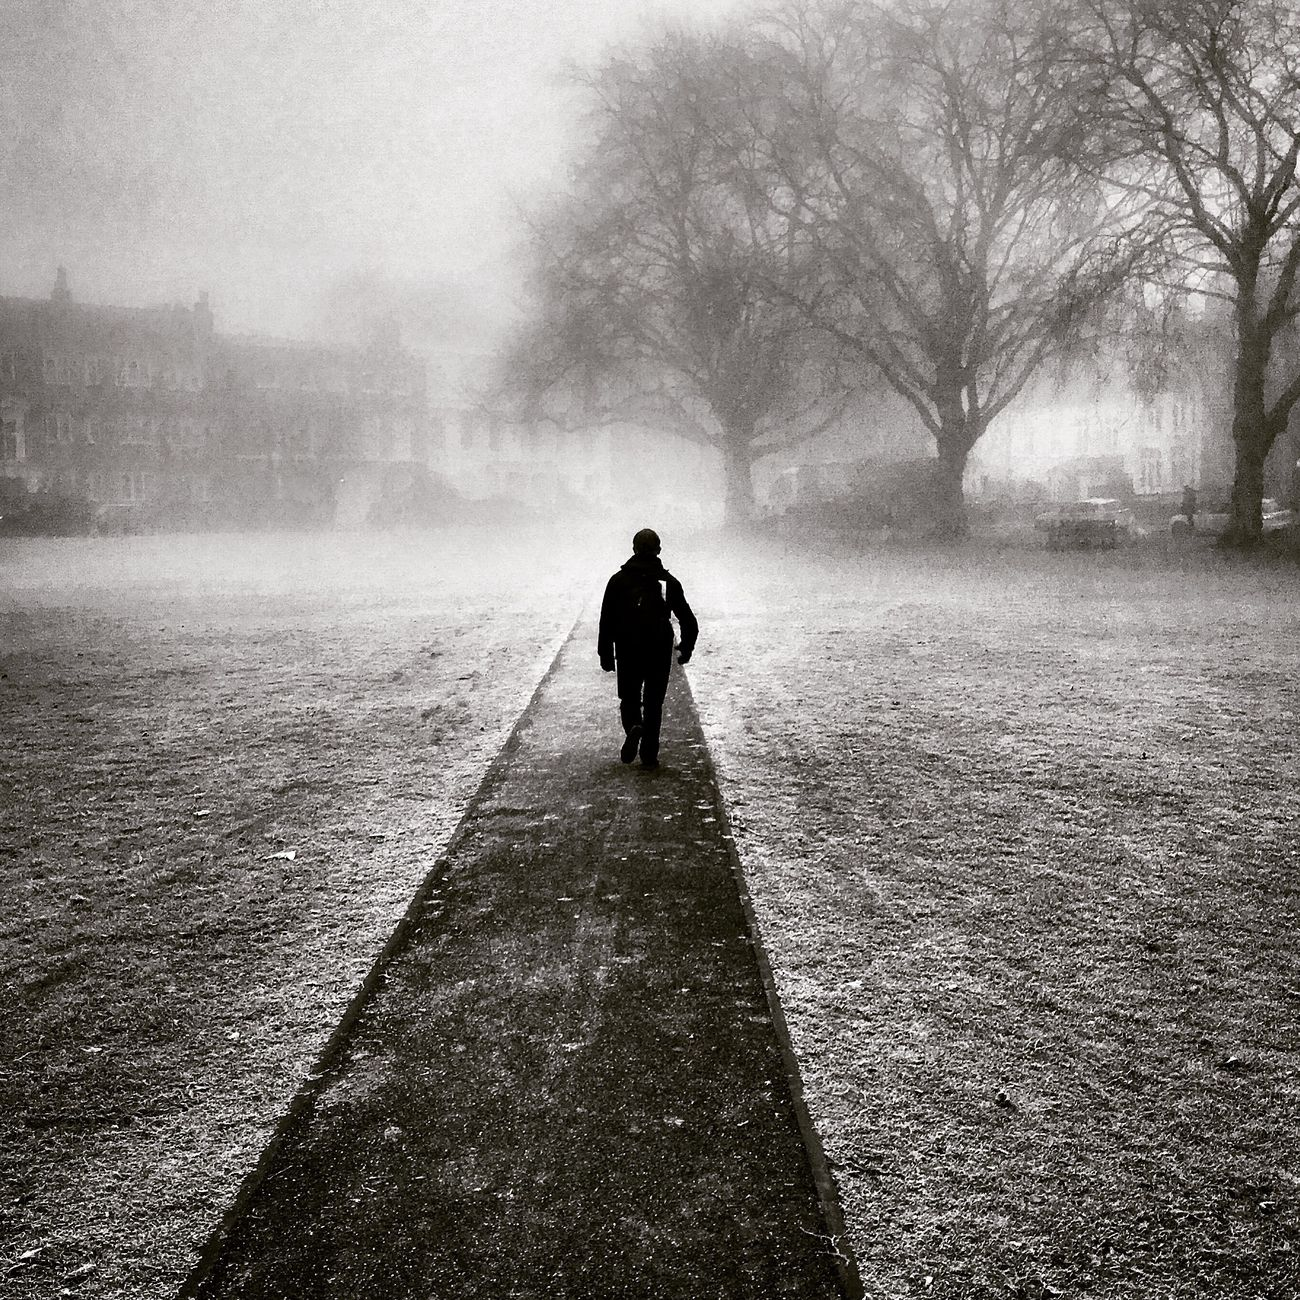 Commute Walk Blackandwhite Monochrome Silhouette Path Bwstreetphotography London Mist Foggy Man Richmond Upon Thames Fog Misty